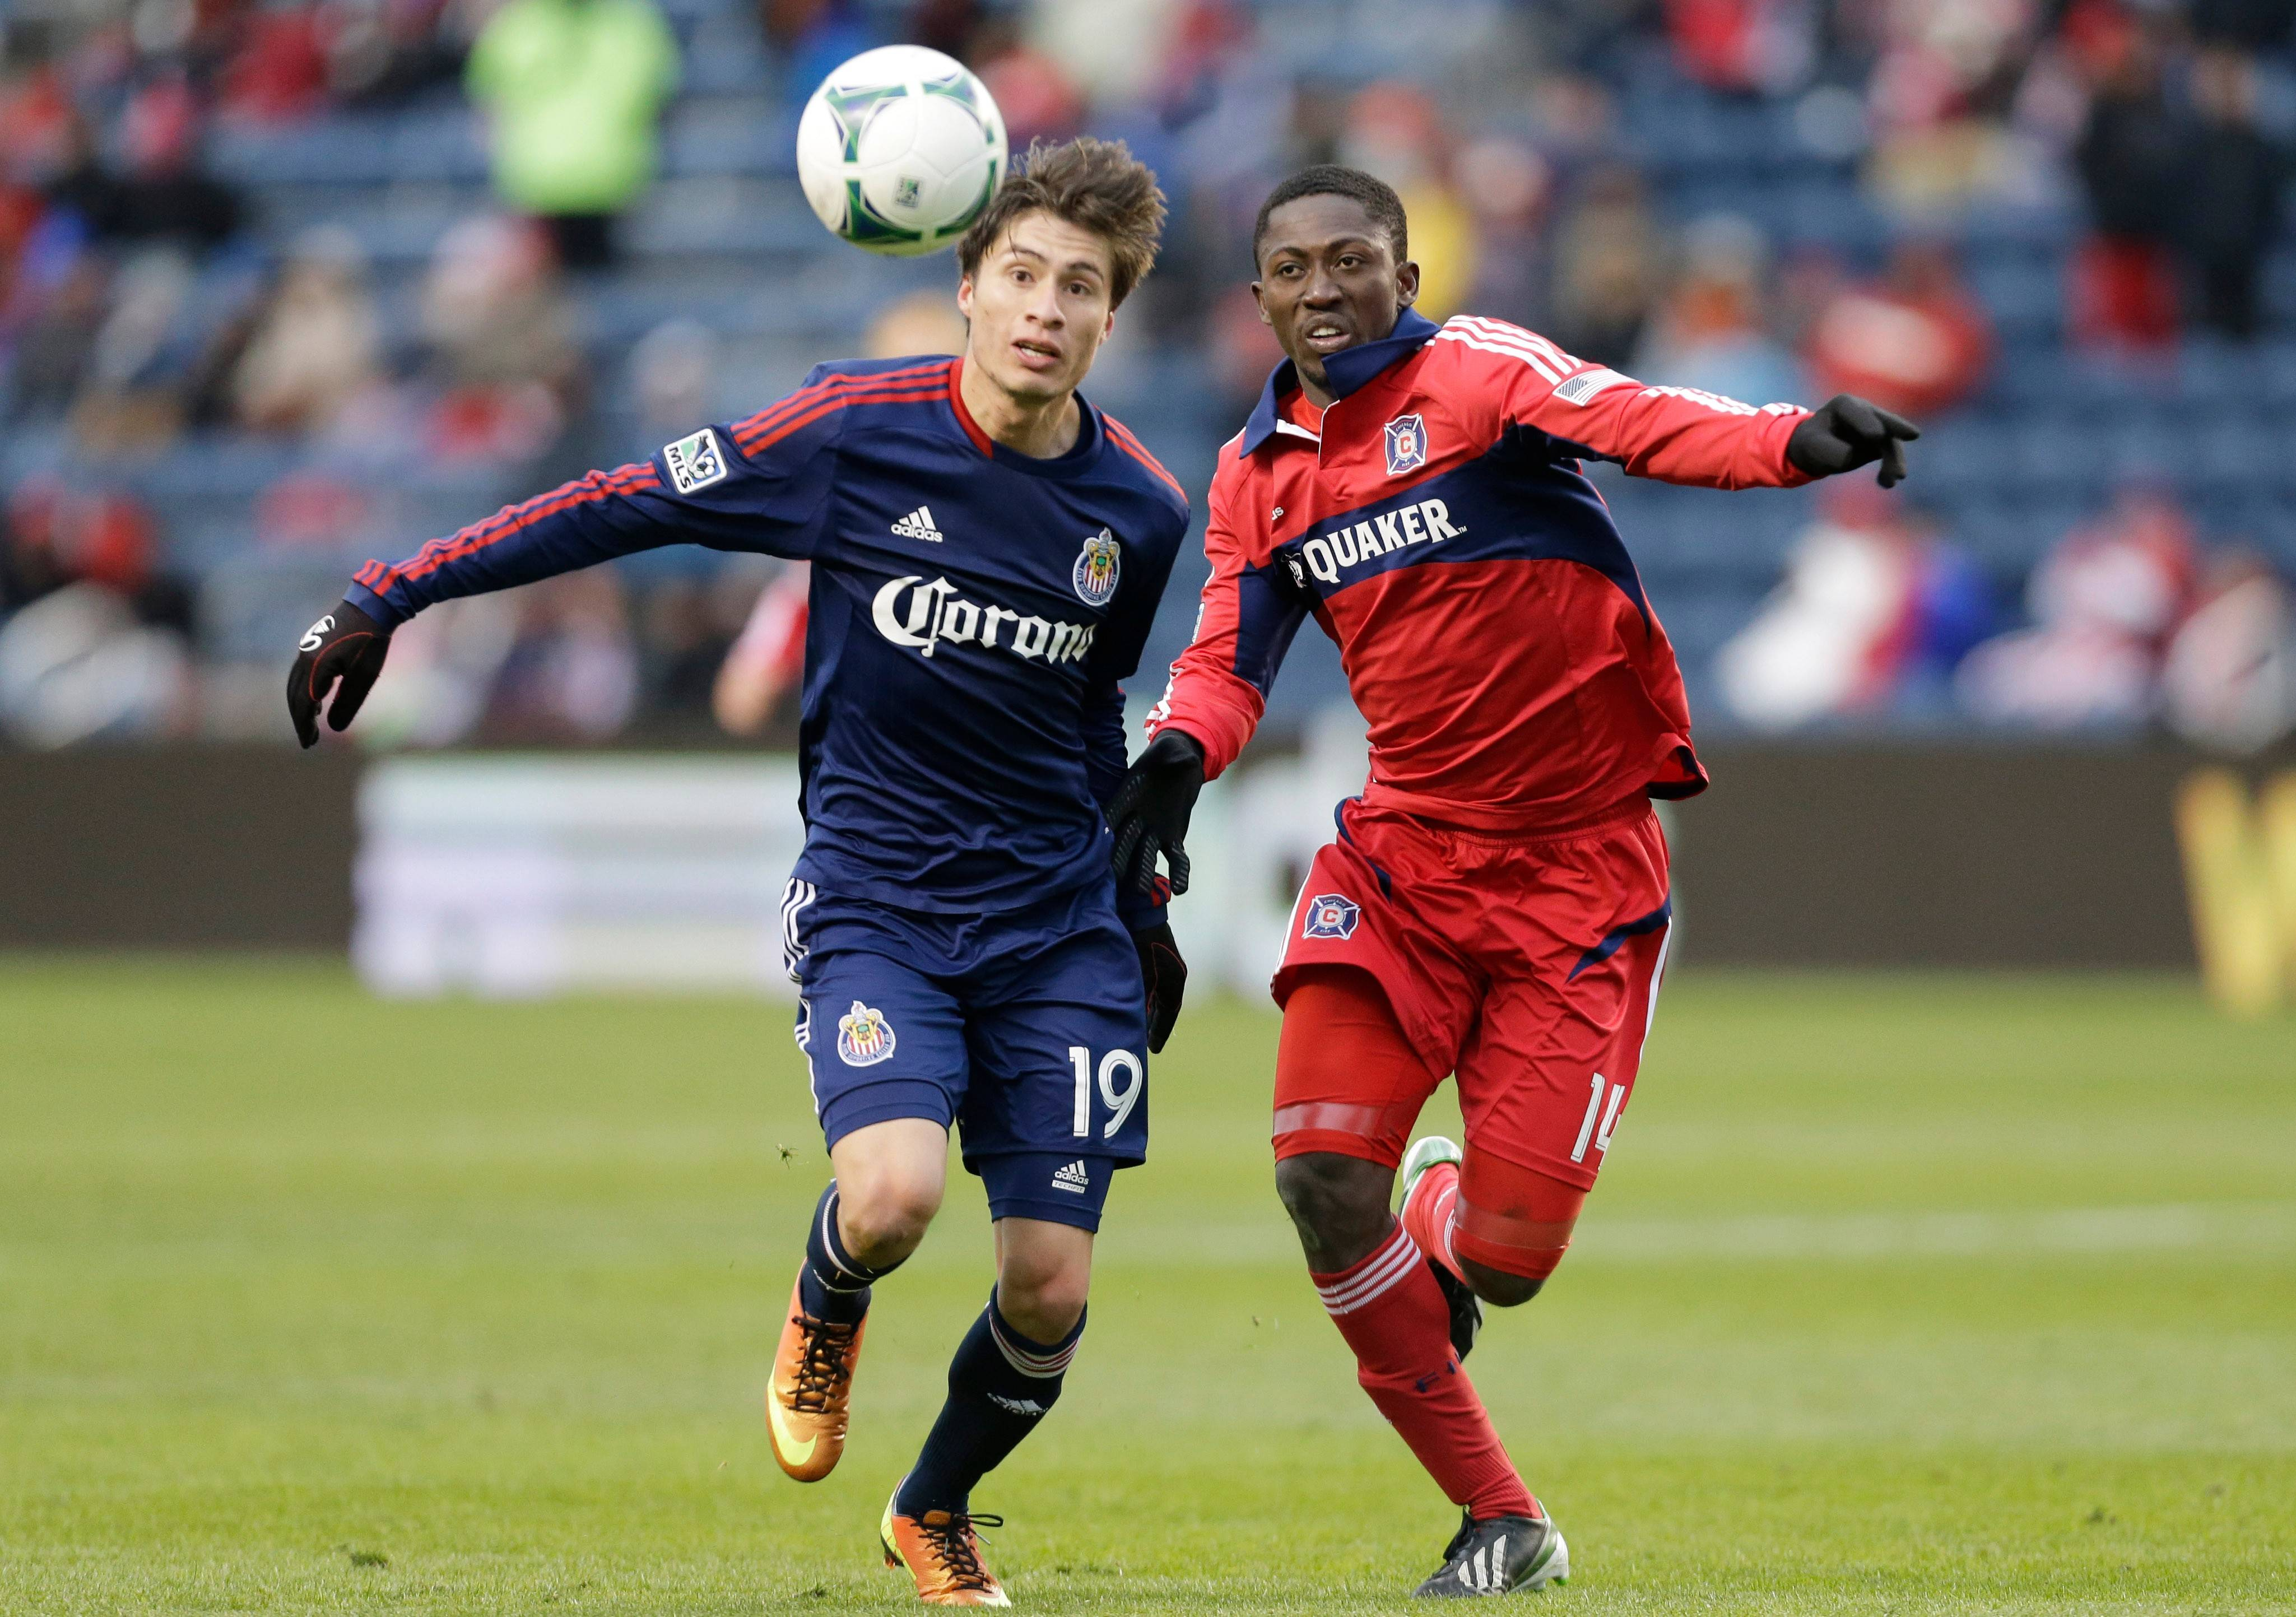 Chivas USA forward Jorge Villafana, left, and Chicago Fire forward Patrick Nyarko, right, chase the ball during the second half of an MLS soccer match in Bridgeview, Ill., Sunday, March 24, 2013. Chivas USA won 4-1. (AP Photo/Nam Y. Huh)